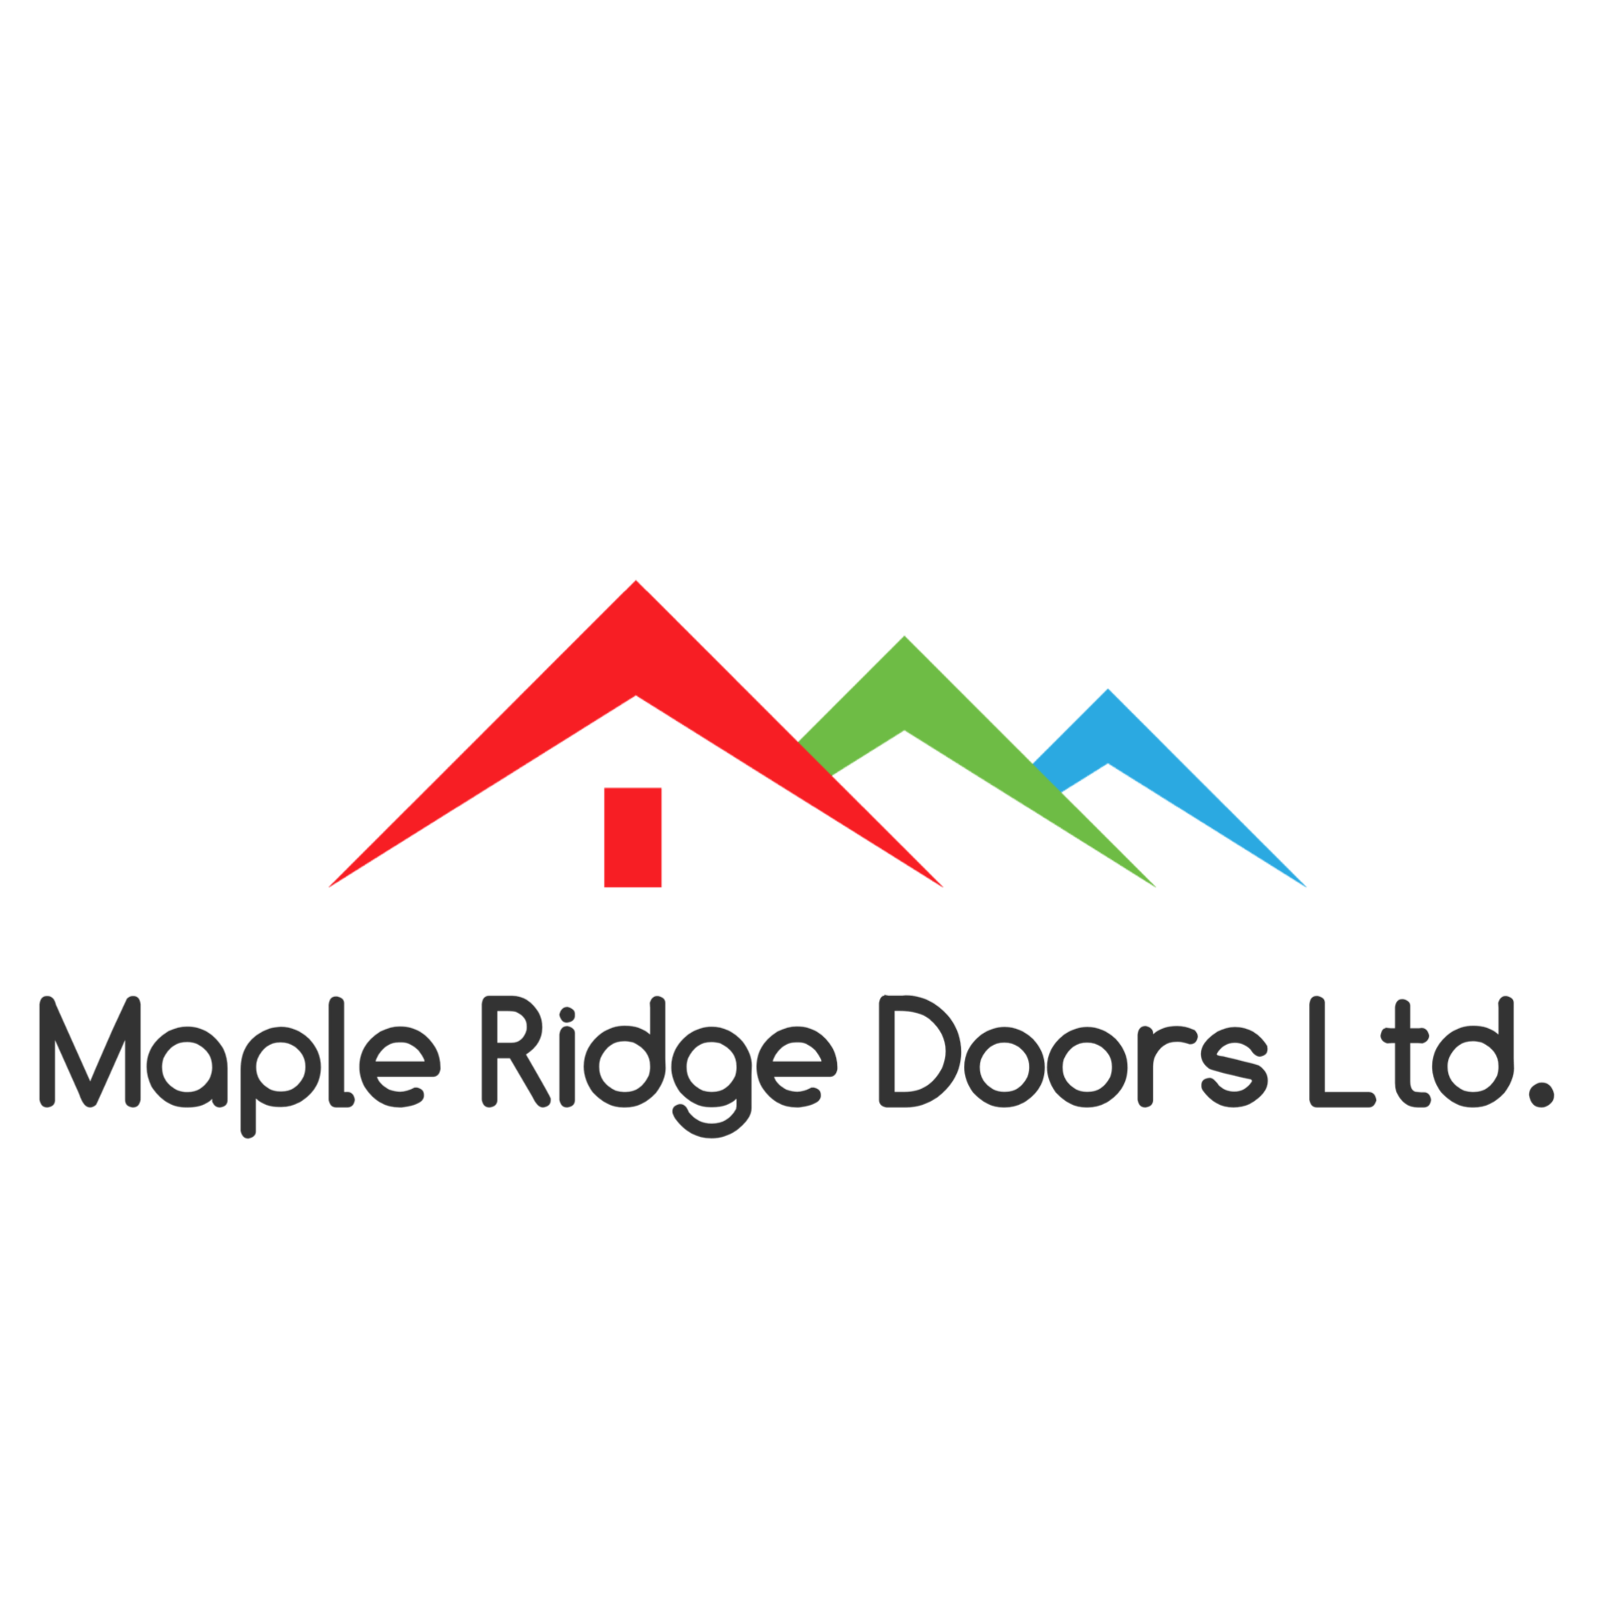 Maple Garage Doors Reliable Garage Door Repair And Installation Company In Maple Ridge